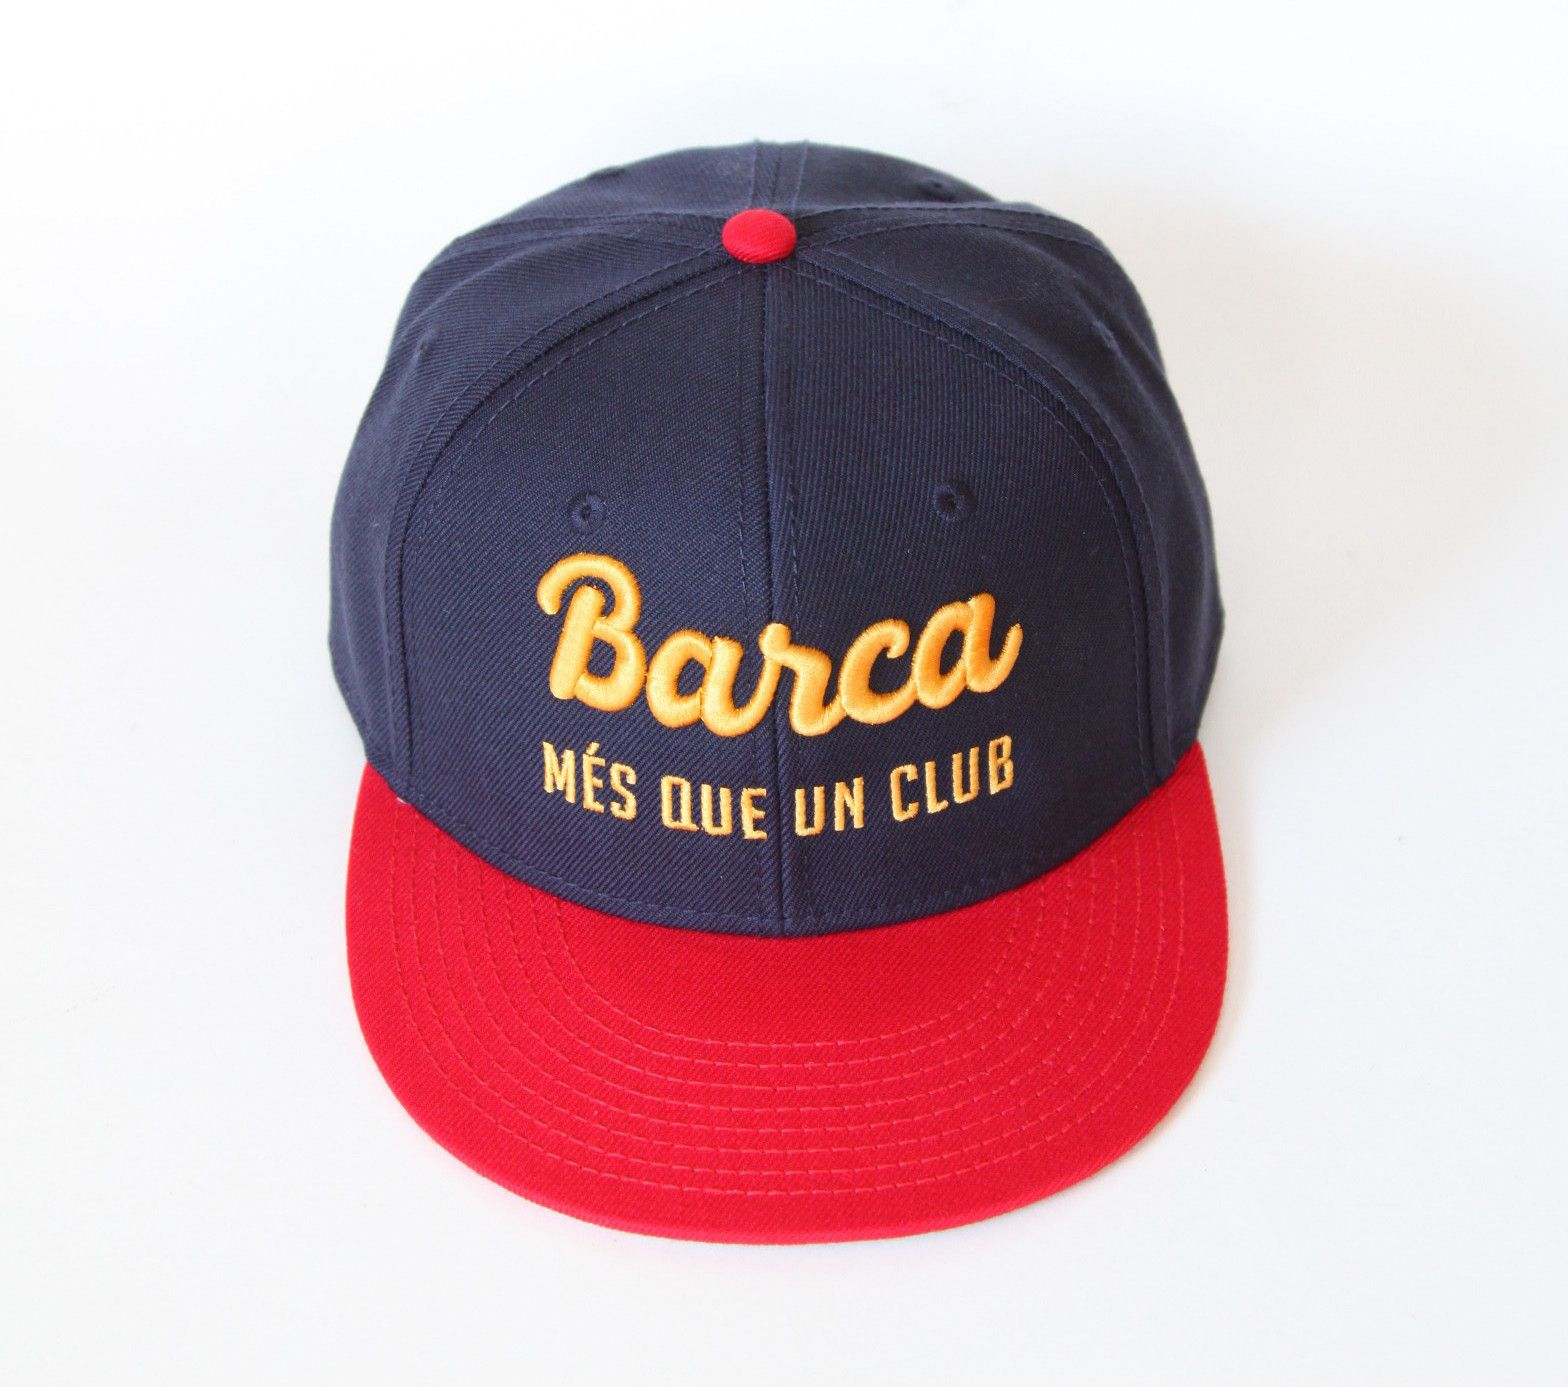 This FC Barcelona snapback hat is 15% Wool and 85% Acrylic and features the  nickname Barca and the motto